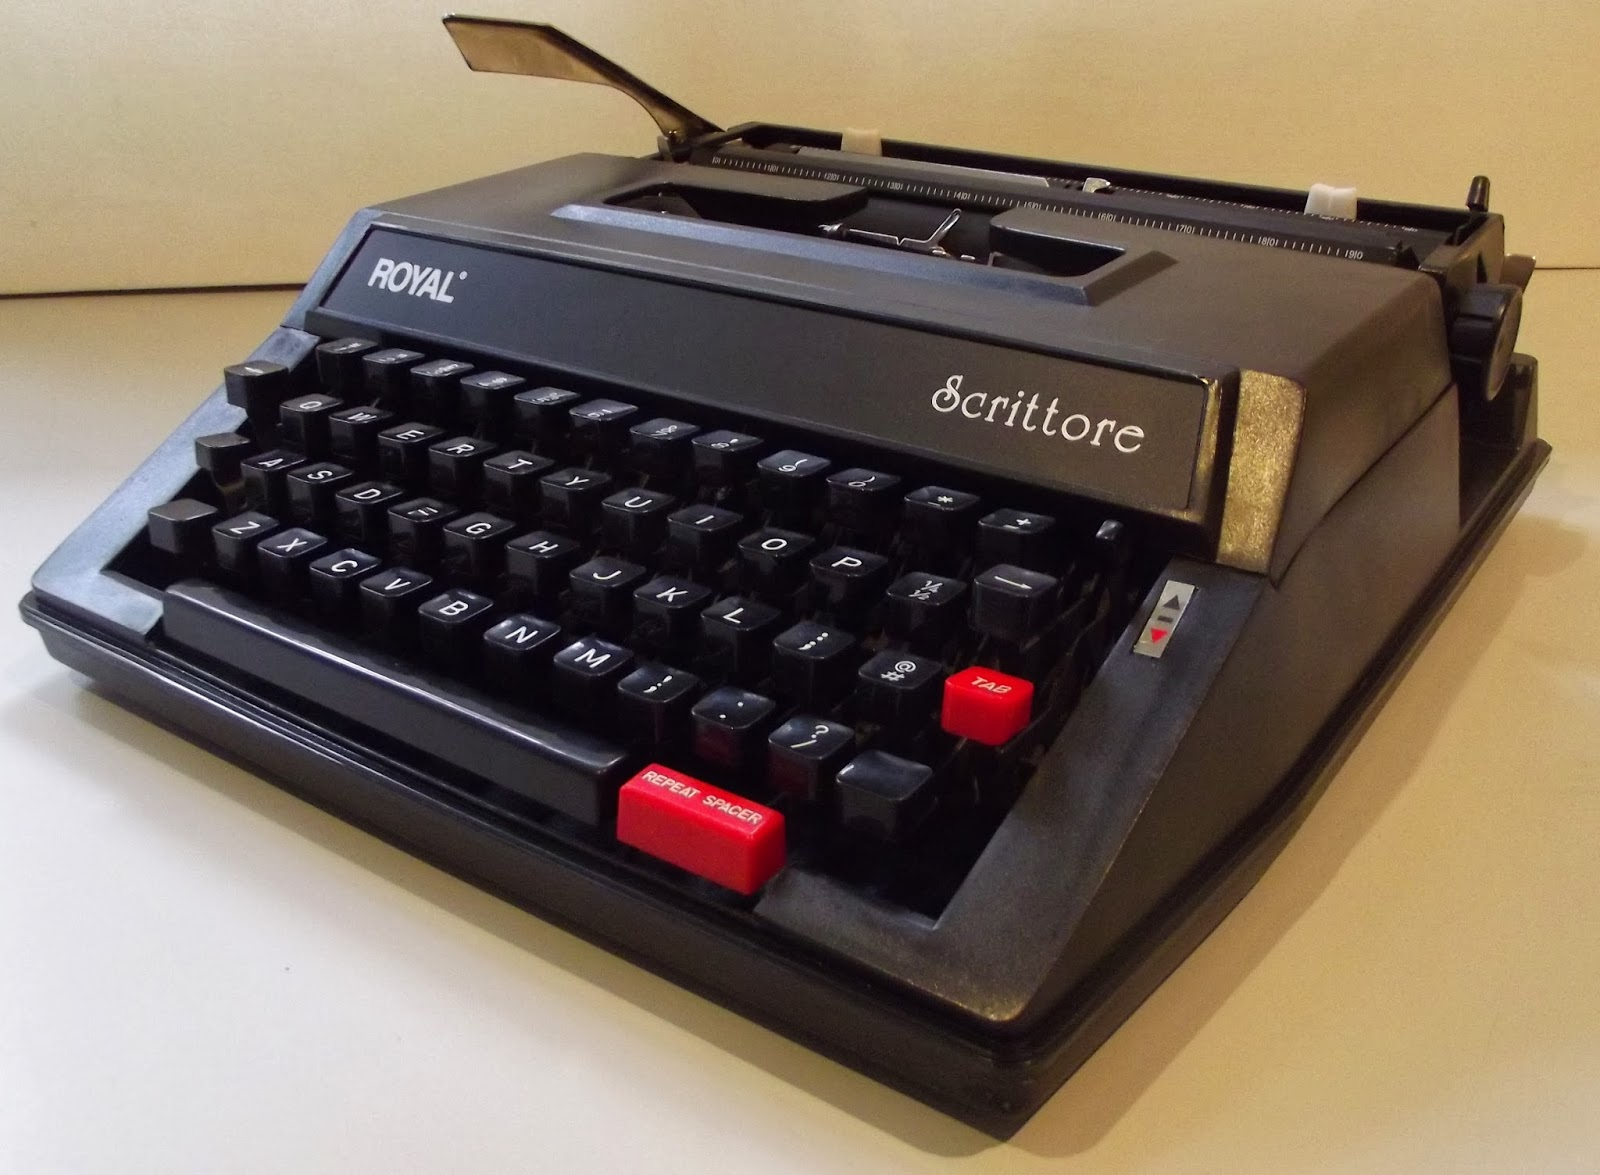 """... typewriter is still for sale as the Royal Scrittore - at $US119. This  """"revived Royal"""" model was reviewed by me in my first """"Portables, ETCetera""""  column, ..."""